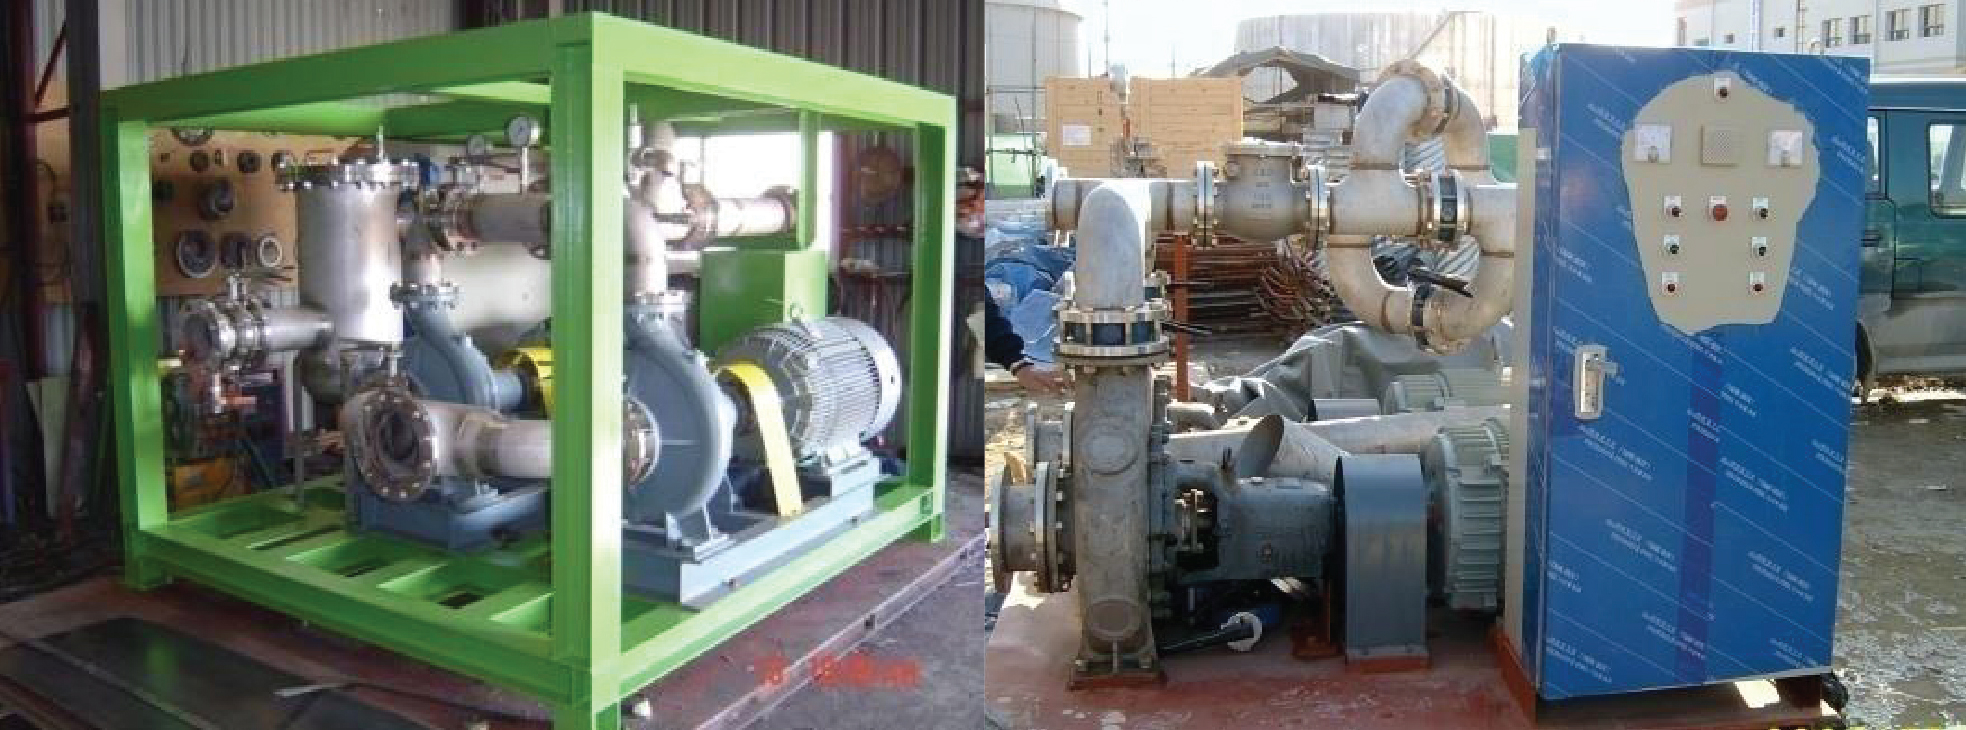 Acid Cleaning_Chemical Circulation pump unit